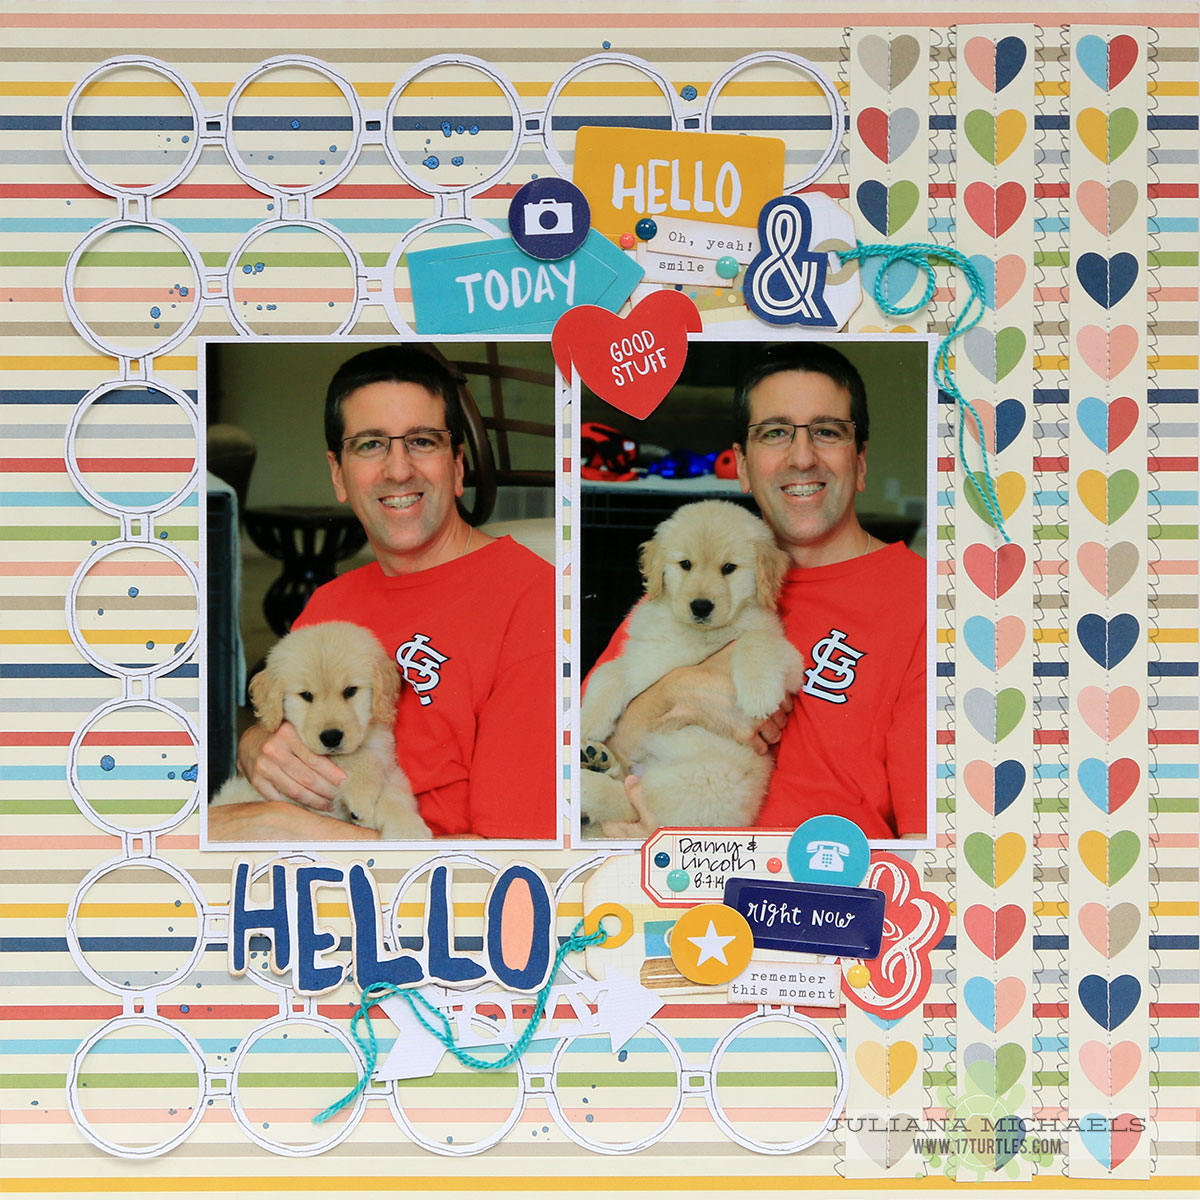 Hello Puppy Scrapbook Page by Juliana Michaels 17turtles featuring Simple Stories Life Documented and free cut file called Circle Grid